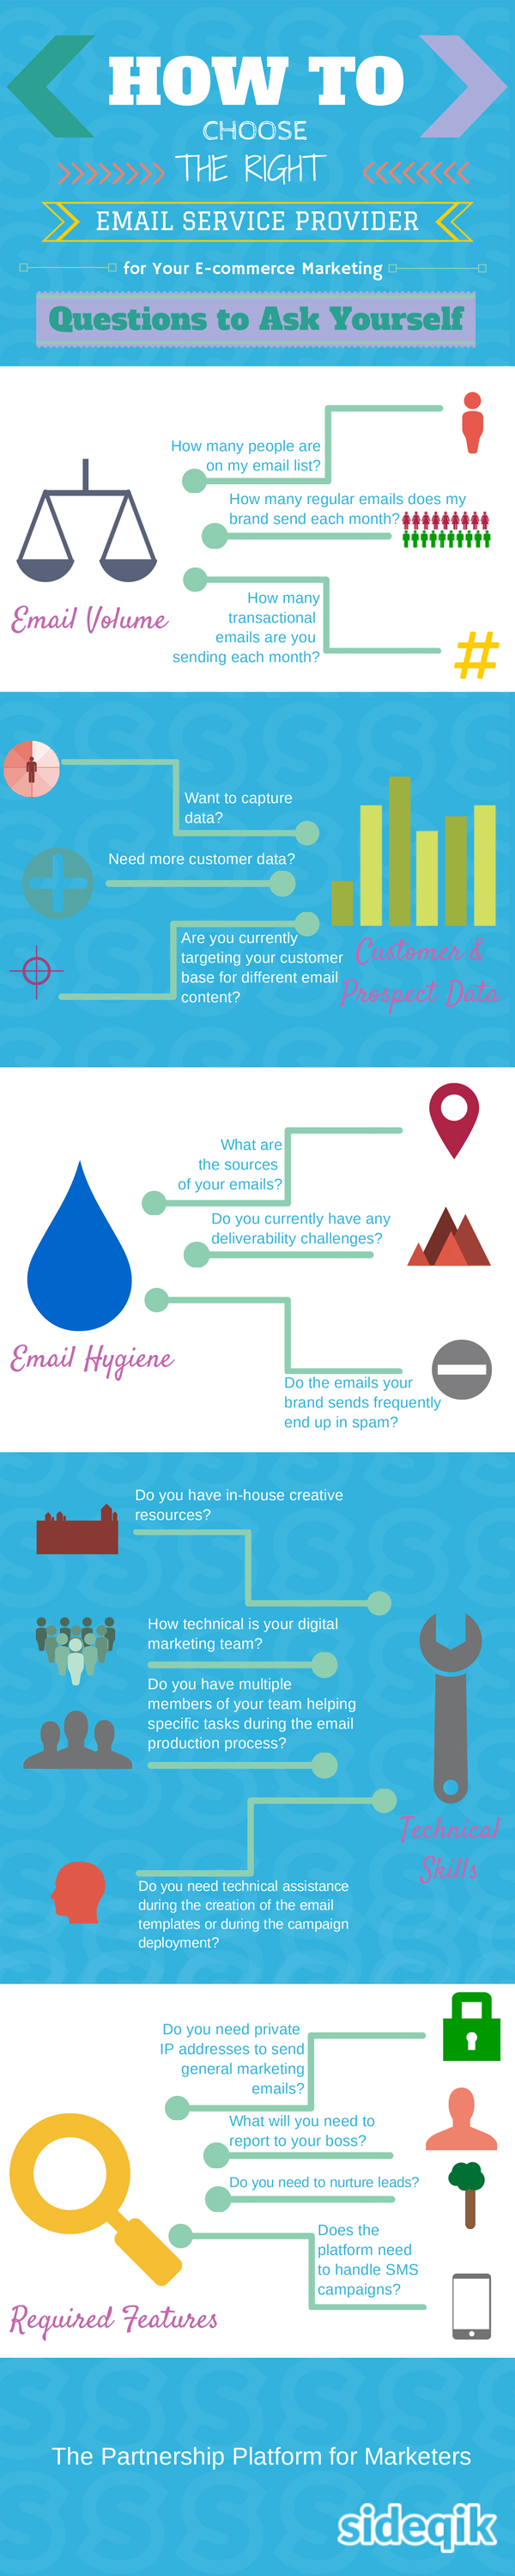 Email Service Provider Infographic